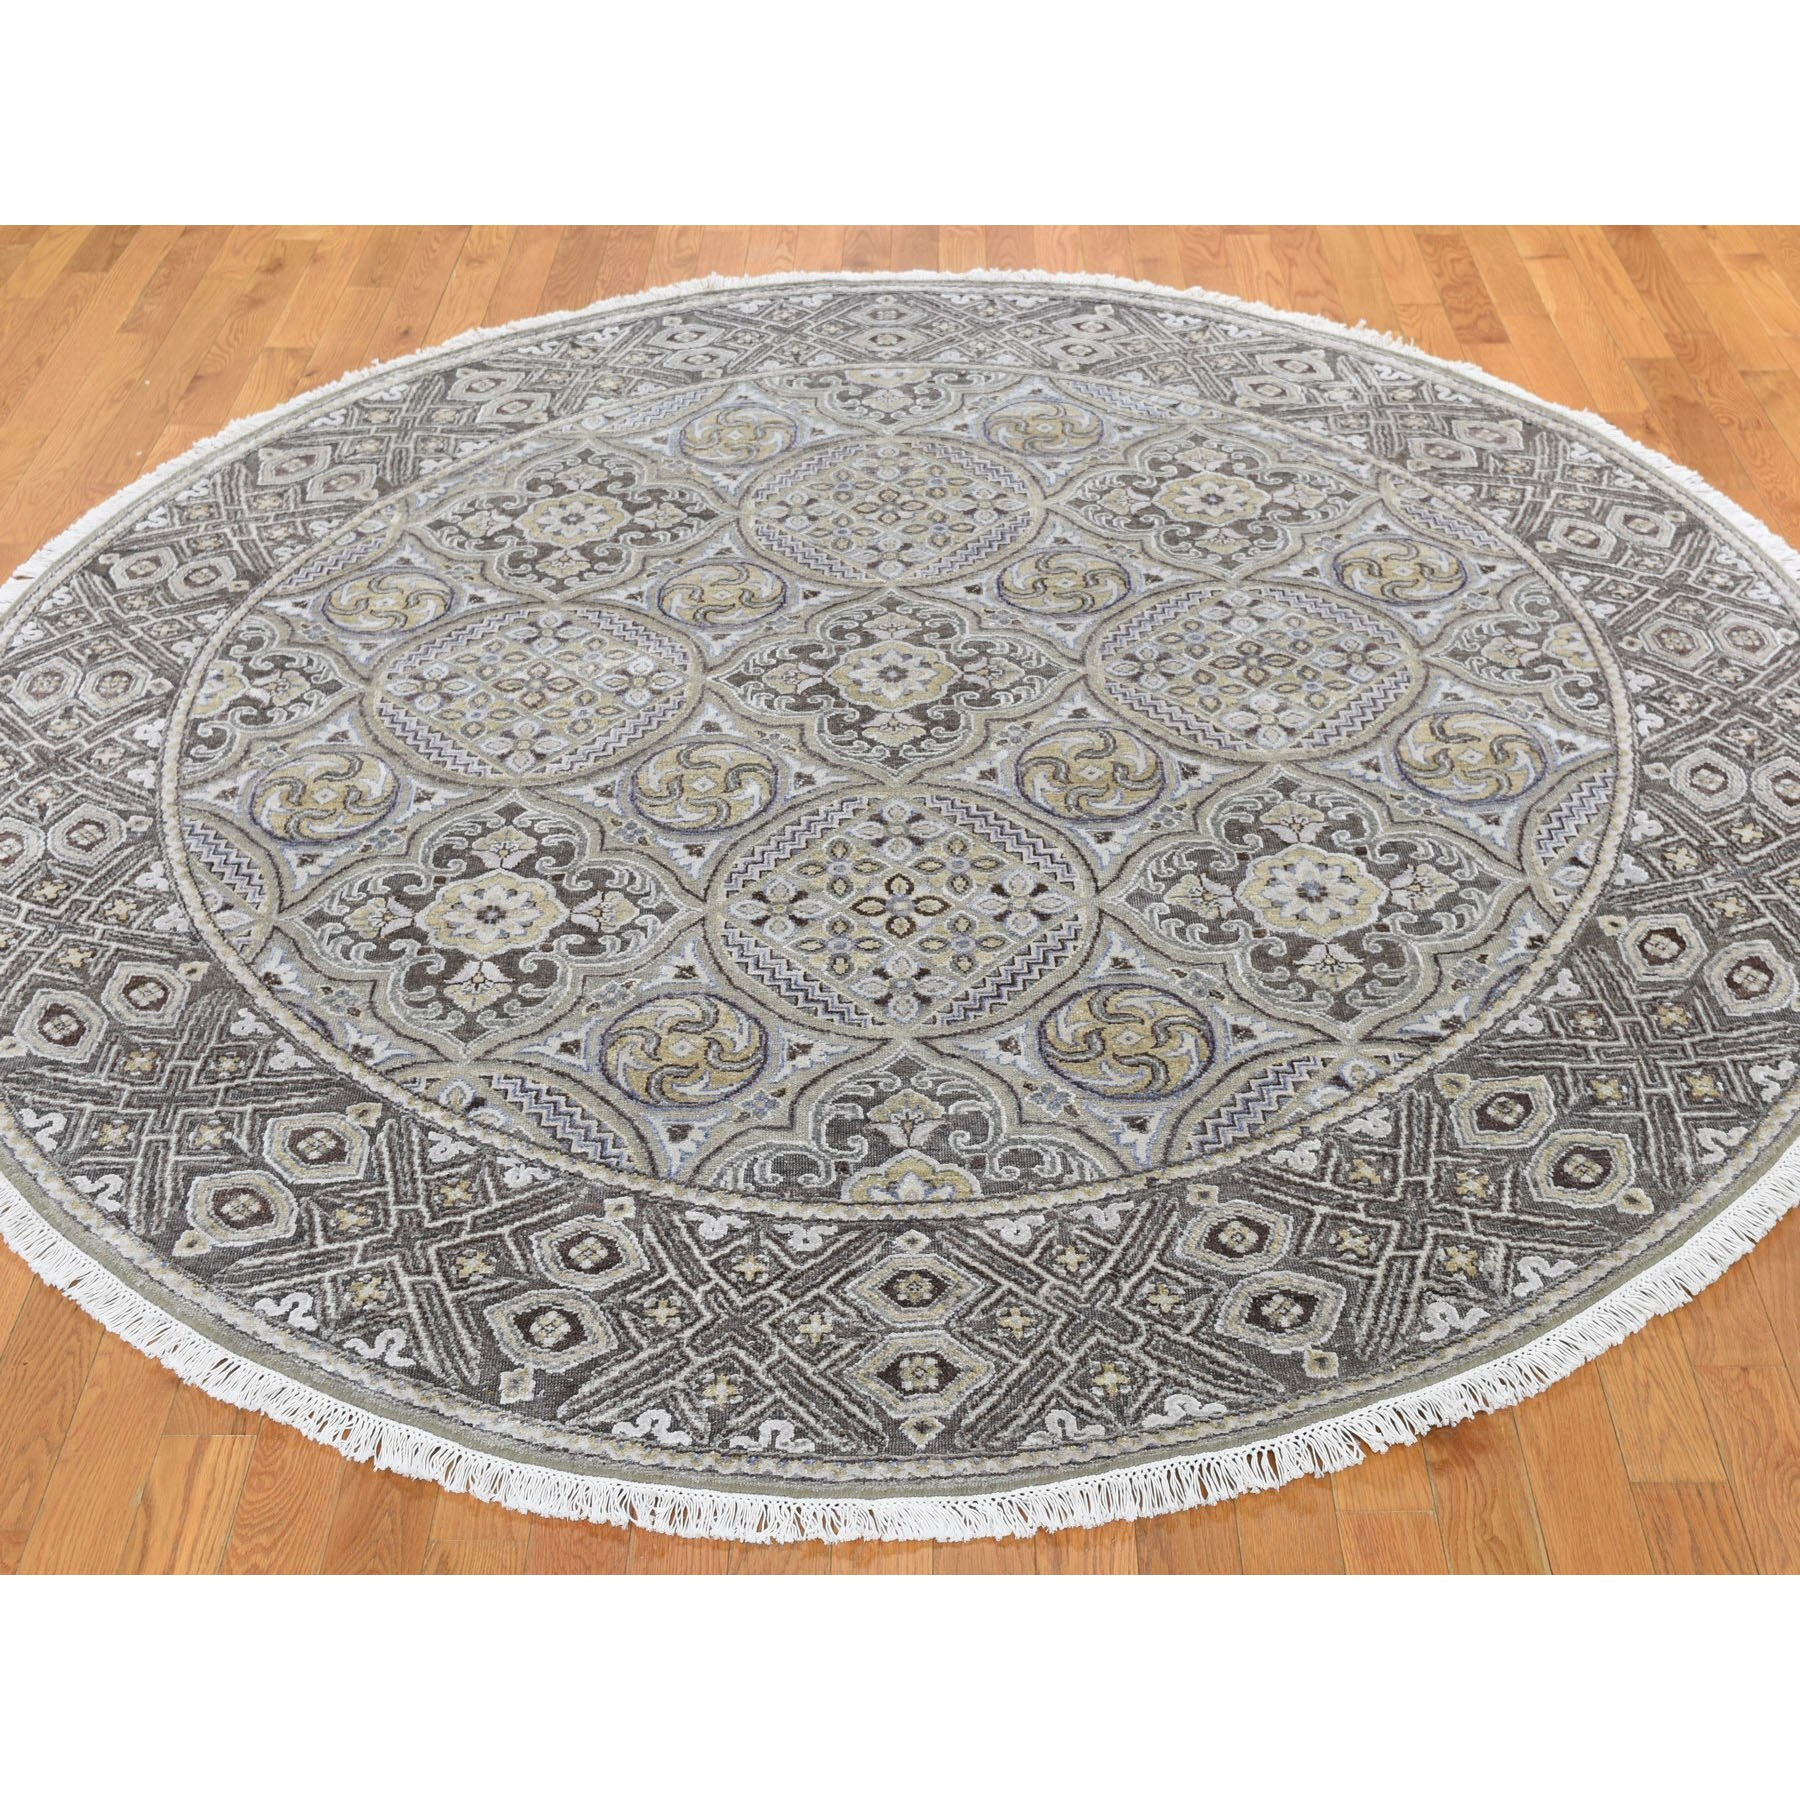 10-x10- Textured Wool and Silk Mughal Inspired Medallions Round Hand-Knotted Oriental Rug